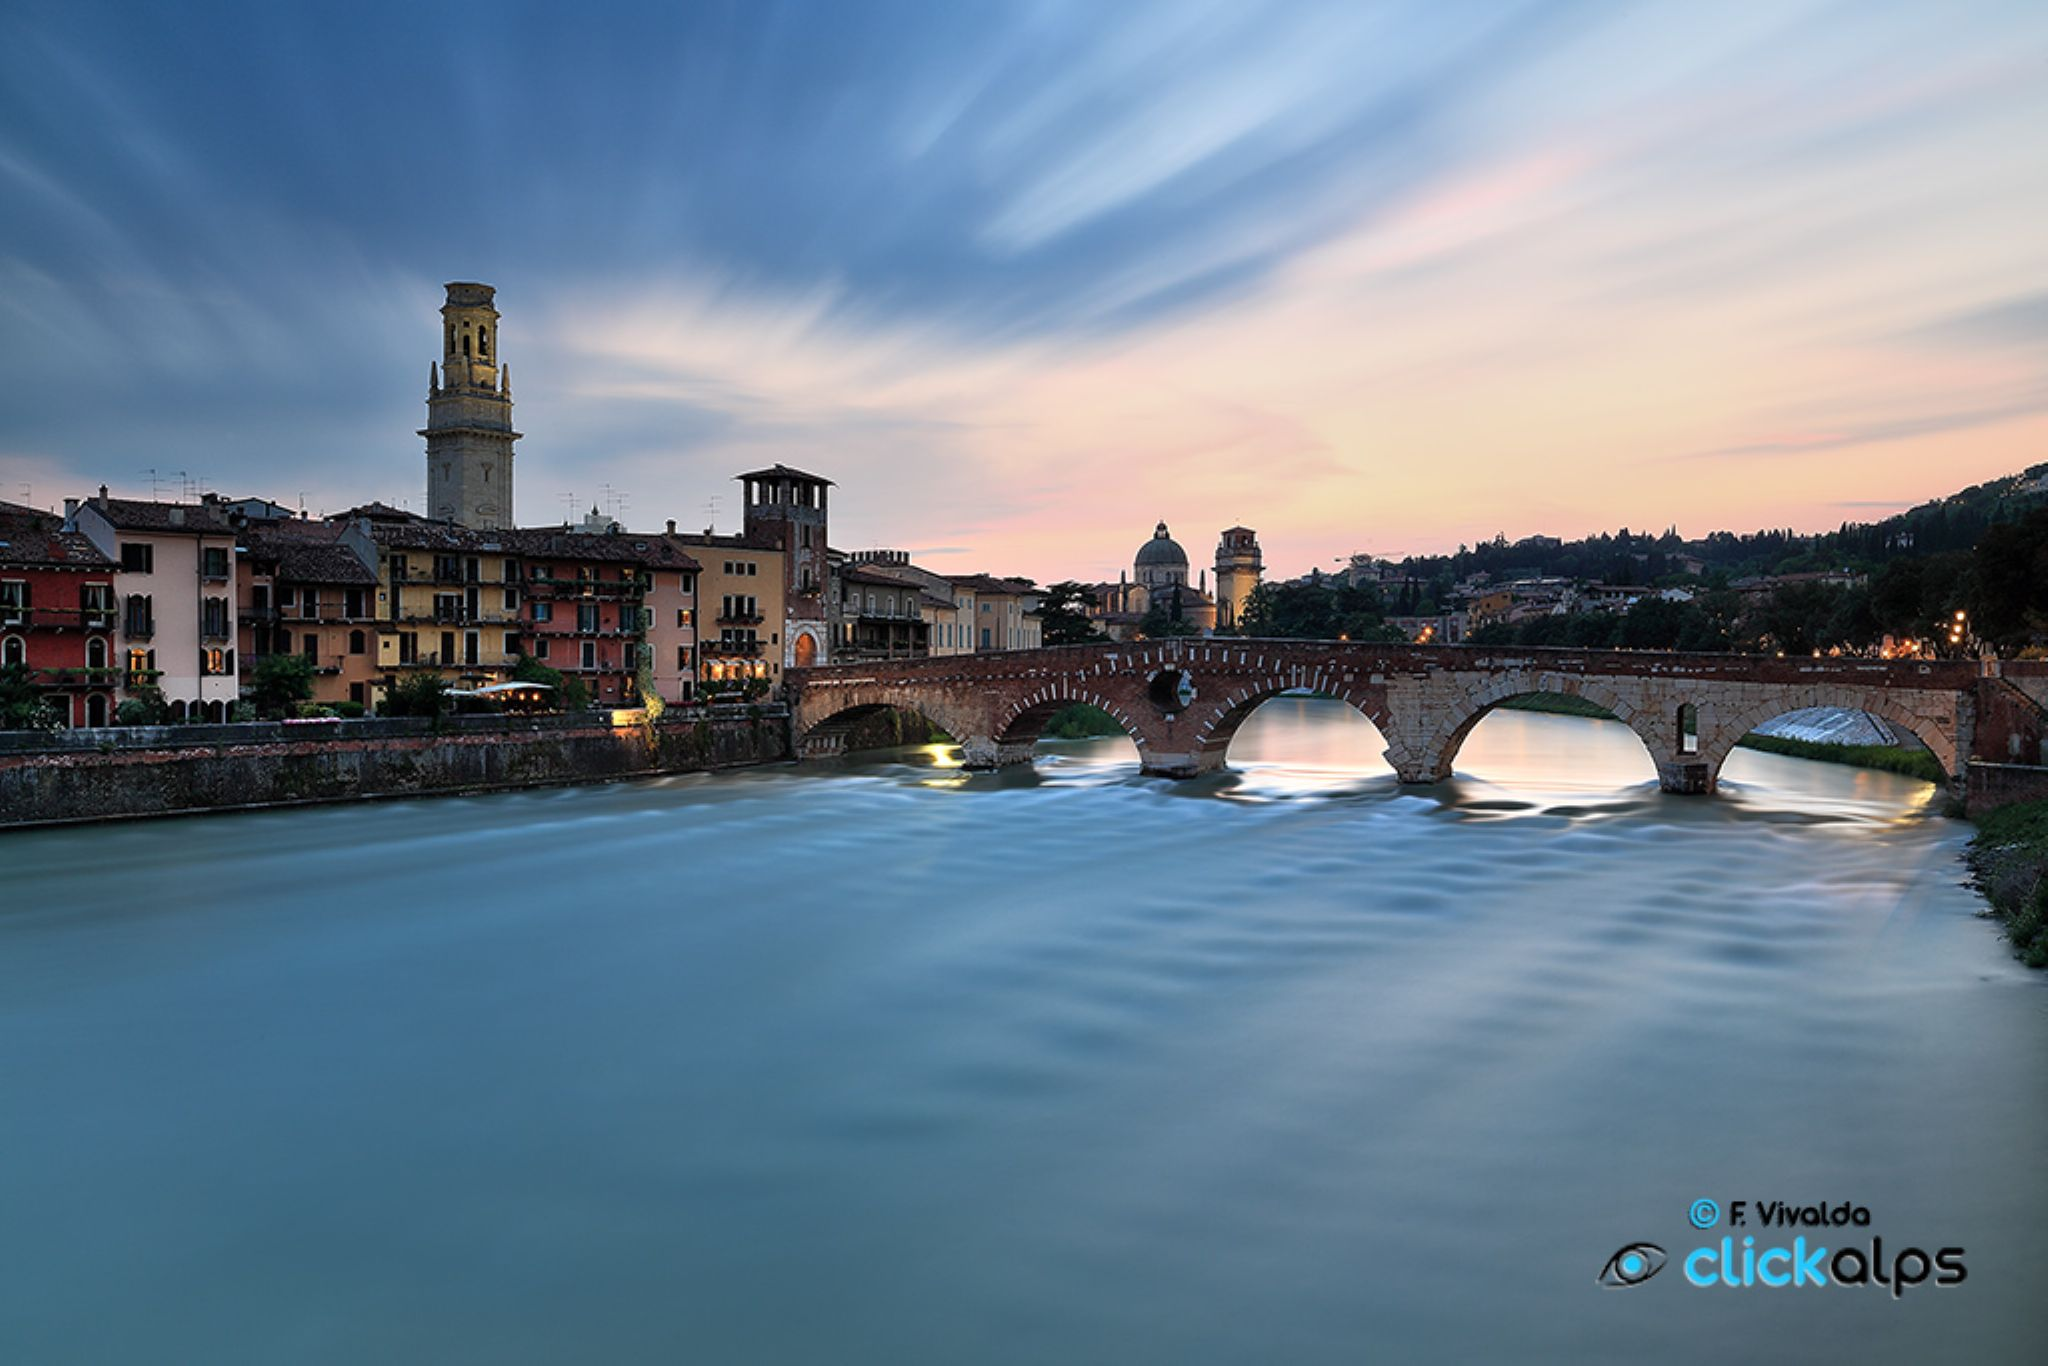 Pietra Bridge, Verona by VivaldaFabio